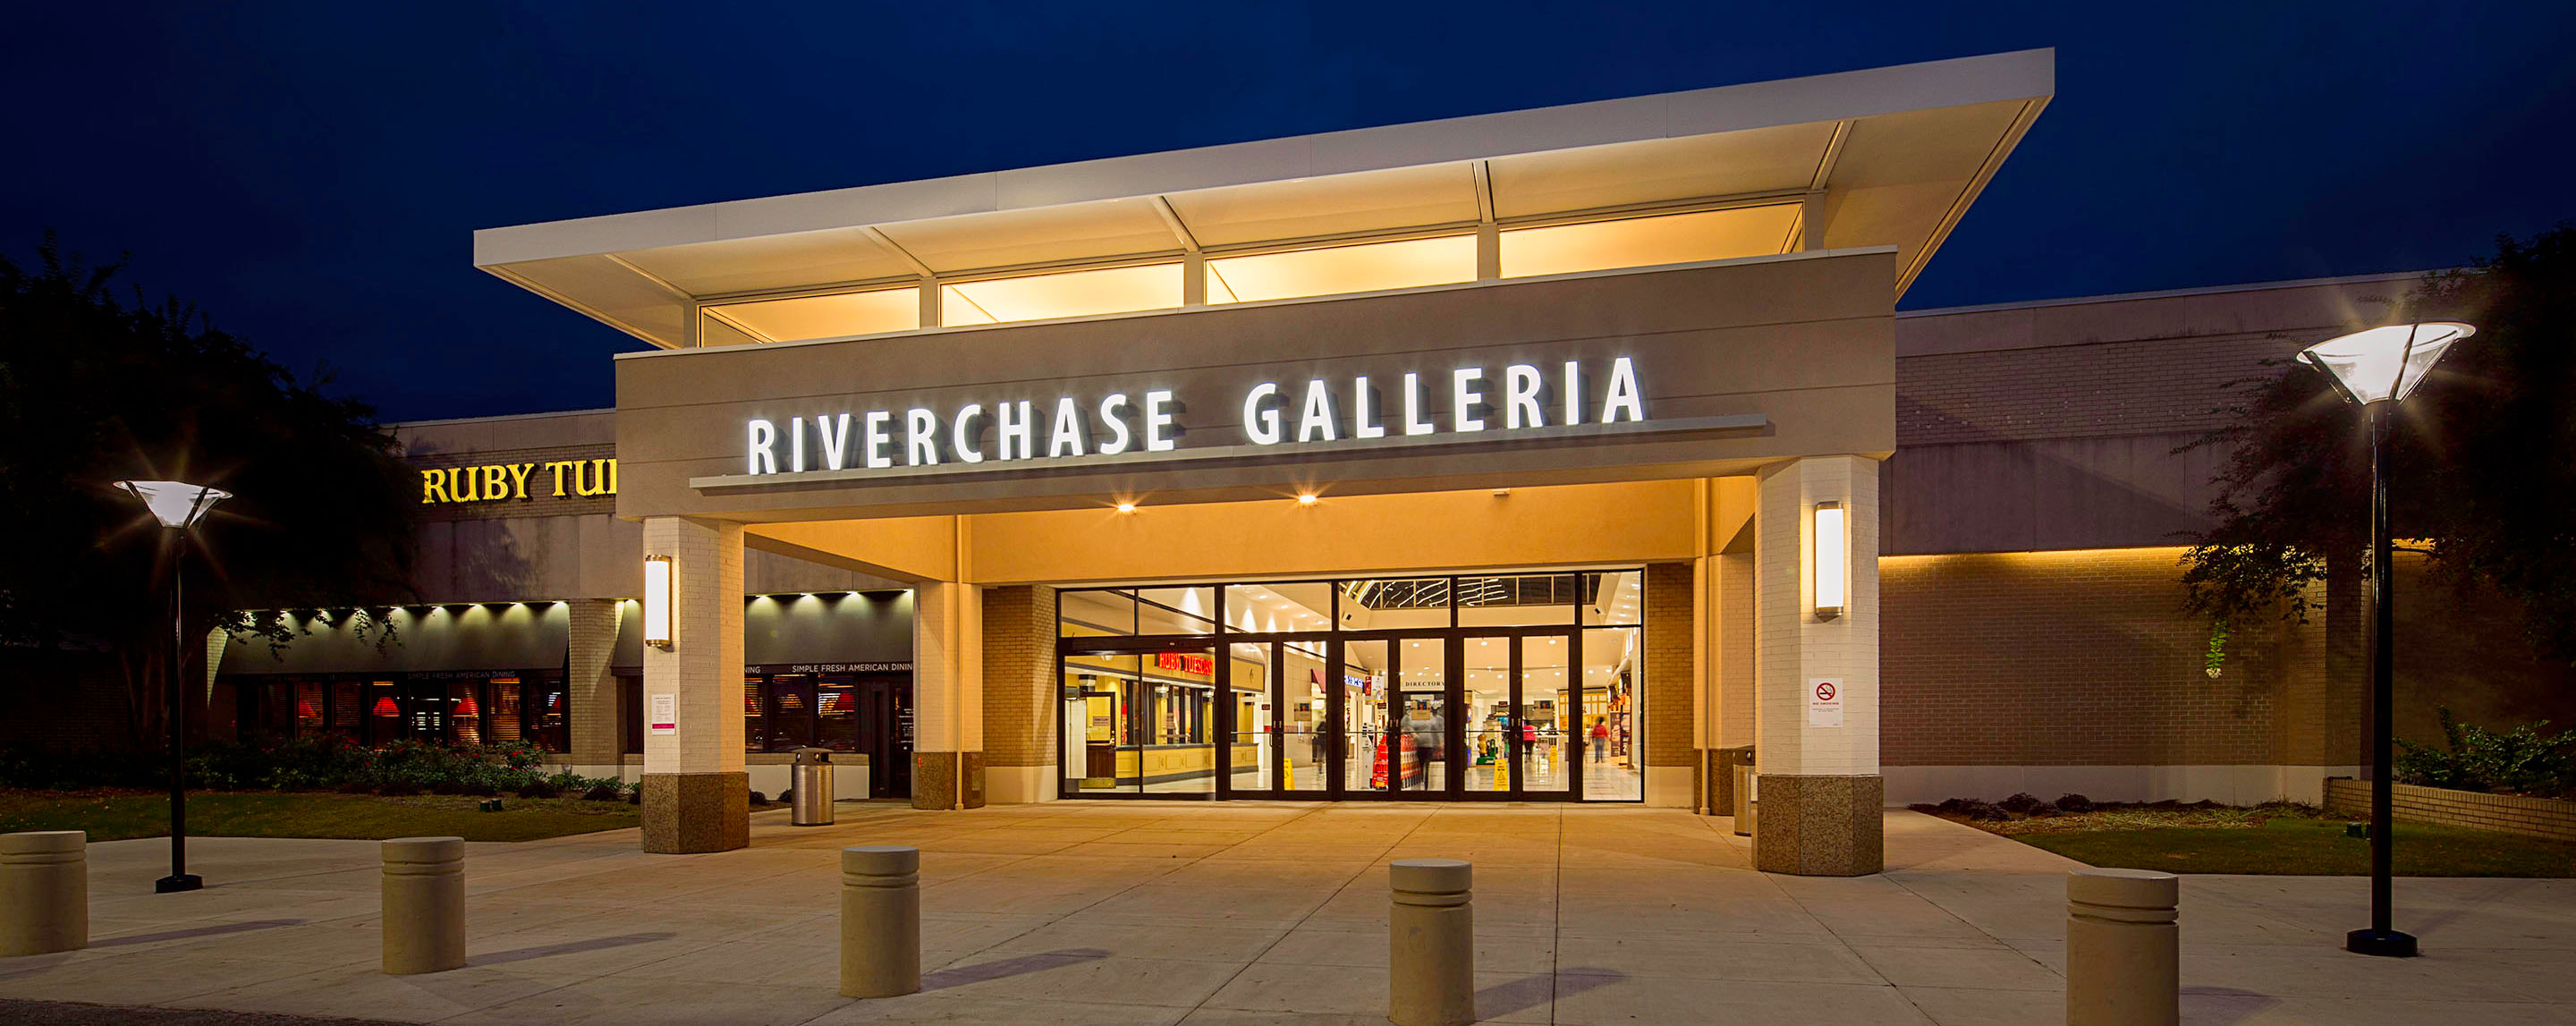 Factory Outlet Malls in Birmingham, AL. About Search Results. This business was removed from the shopping collection. 1. Socks World Mill Outlet Inc. Valley Ave Birmingham, AL () Outlet Malls Outlet Stores. Add to mybook Remove from mybook. Added to your shopping .